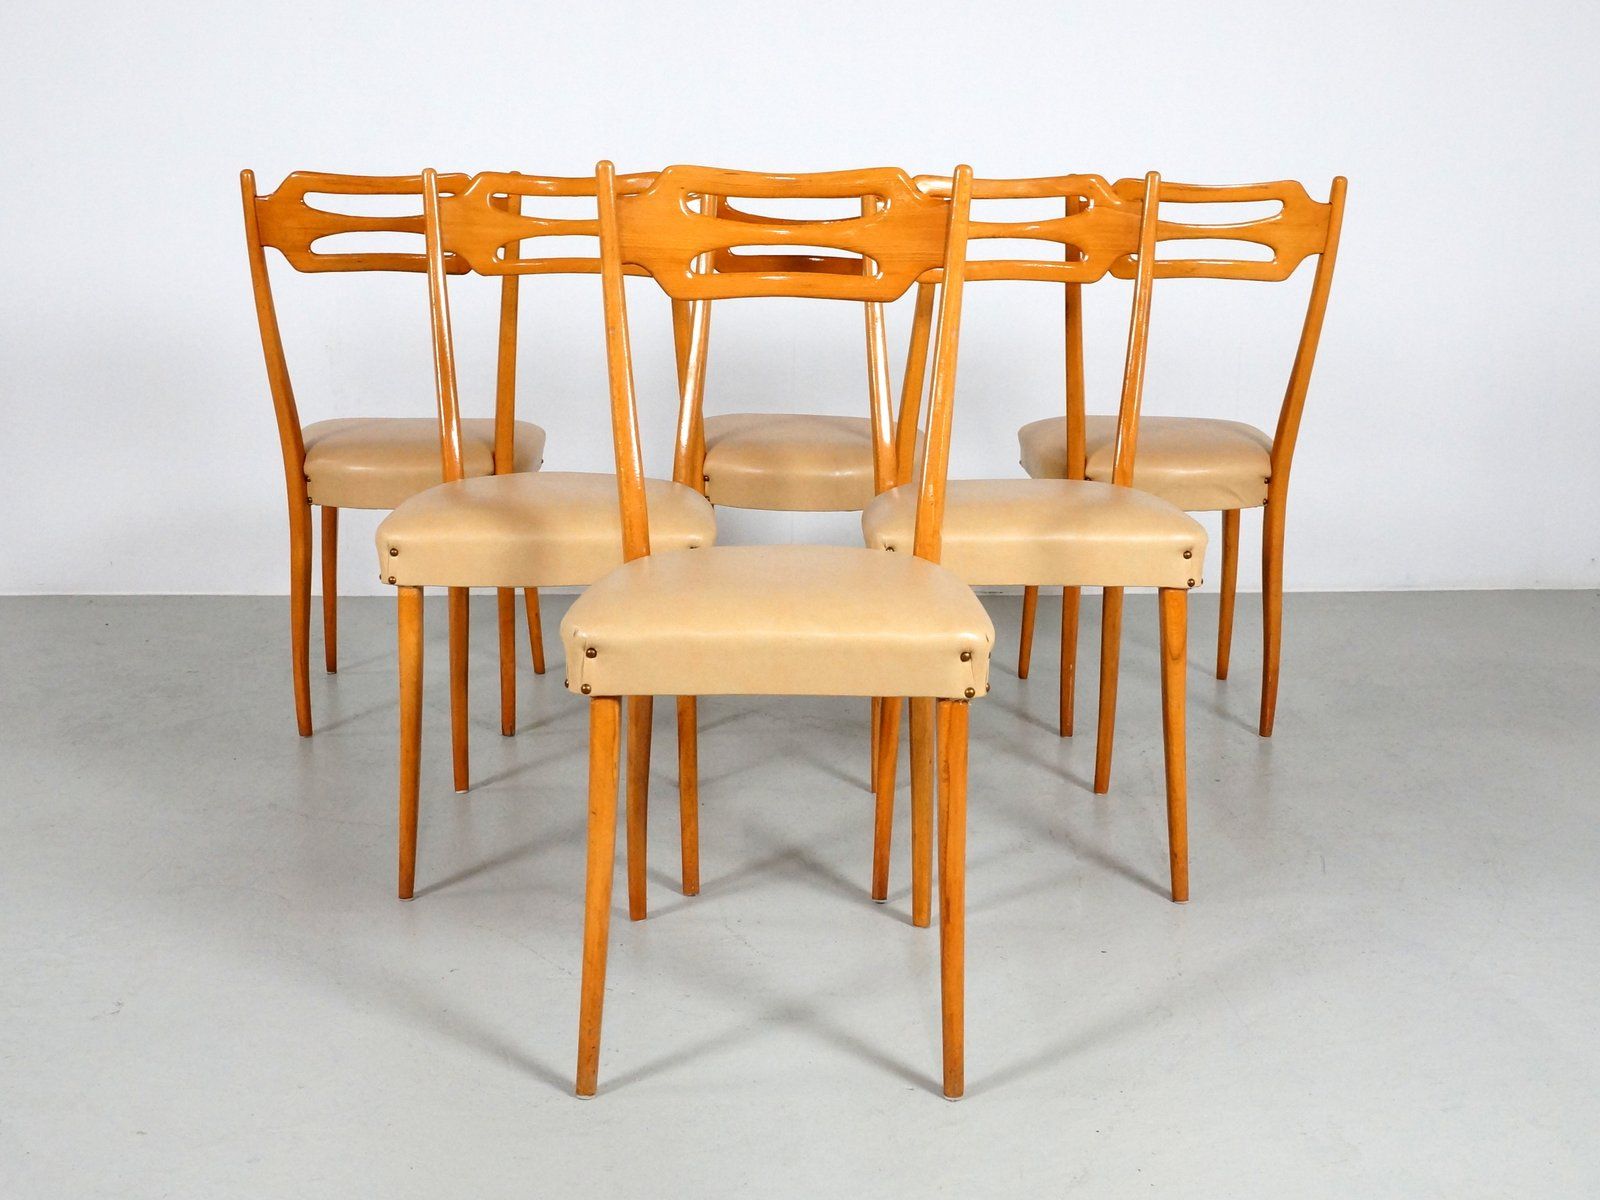 Italian Dining Chairs in Polished Maple Wood Set of 6 for sale at